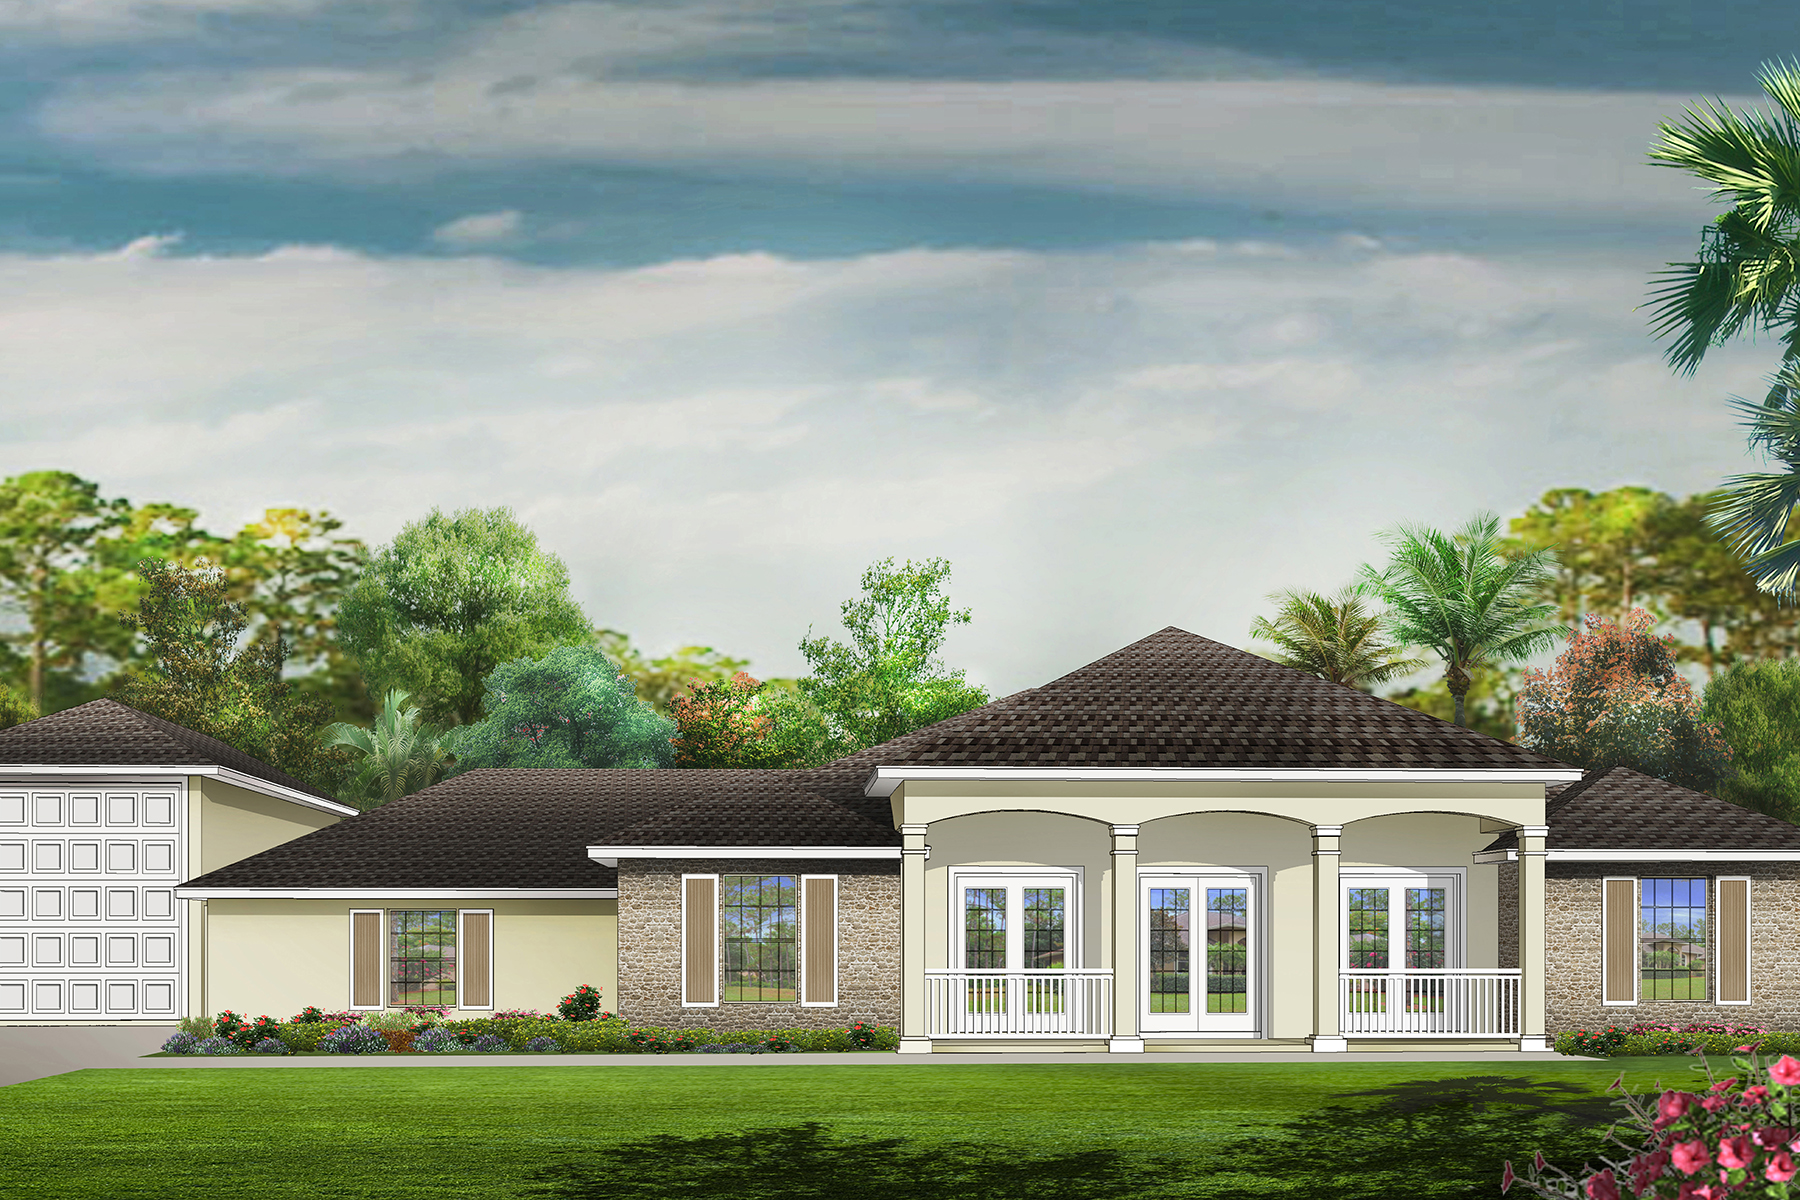 Single Family Home for Sale at PORT ORANGE AND THE BEACHES 2765 Autumn Leaves Dr, Port Orange, Florida 32128 United States